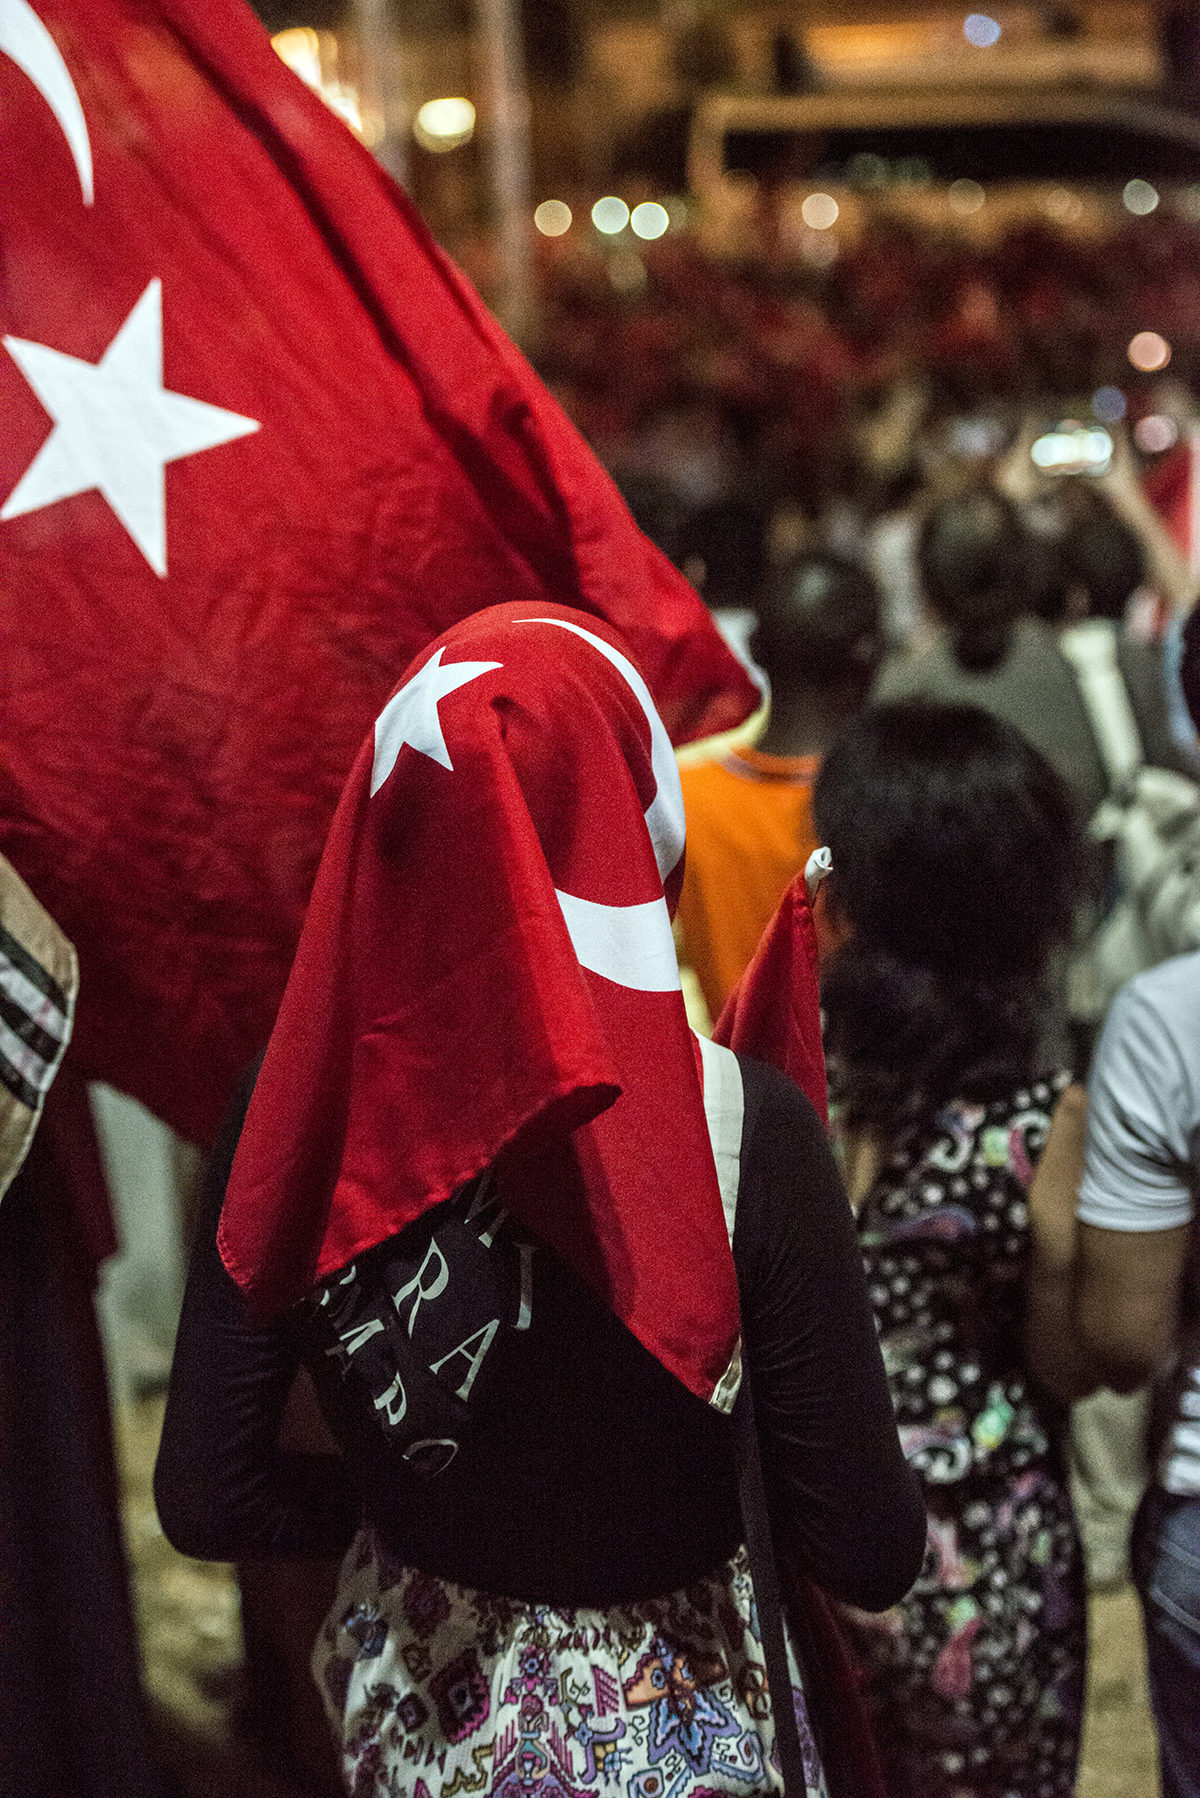 #199 —Taksim - 